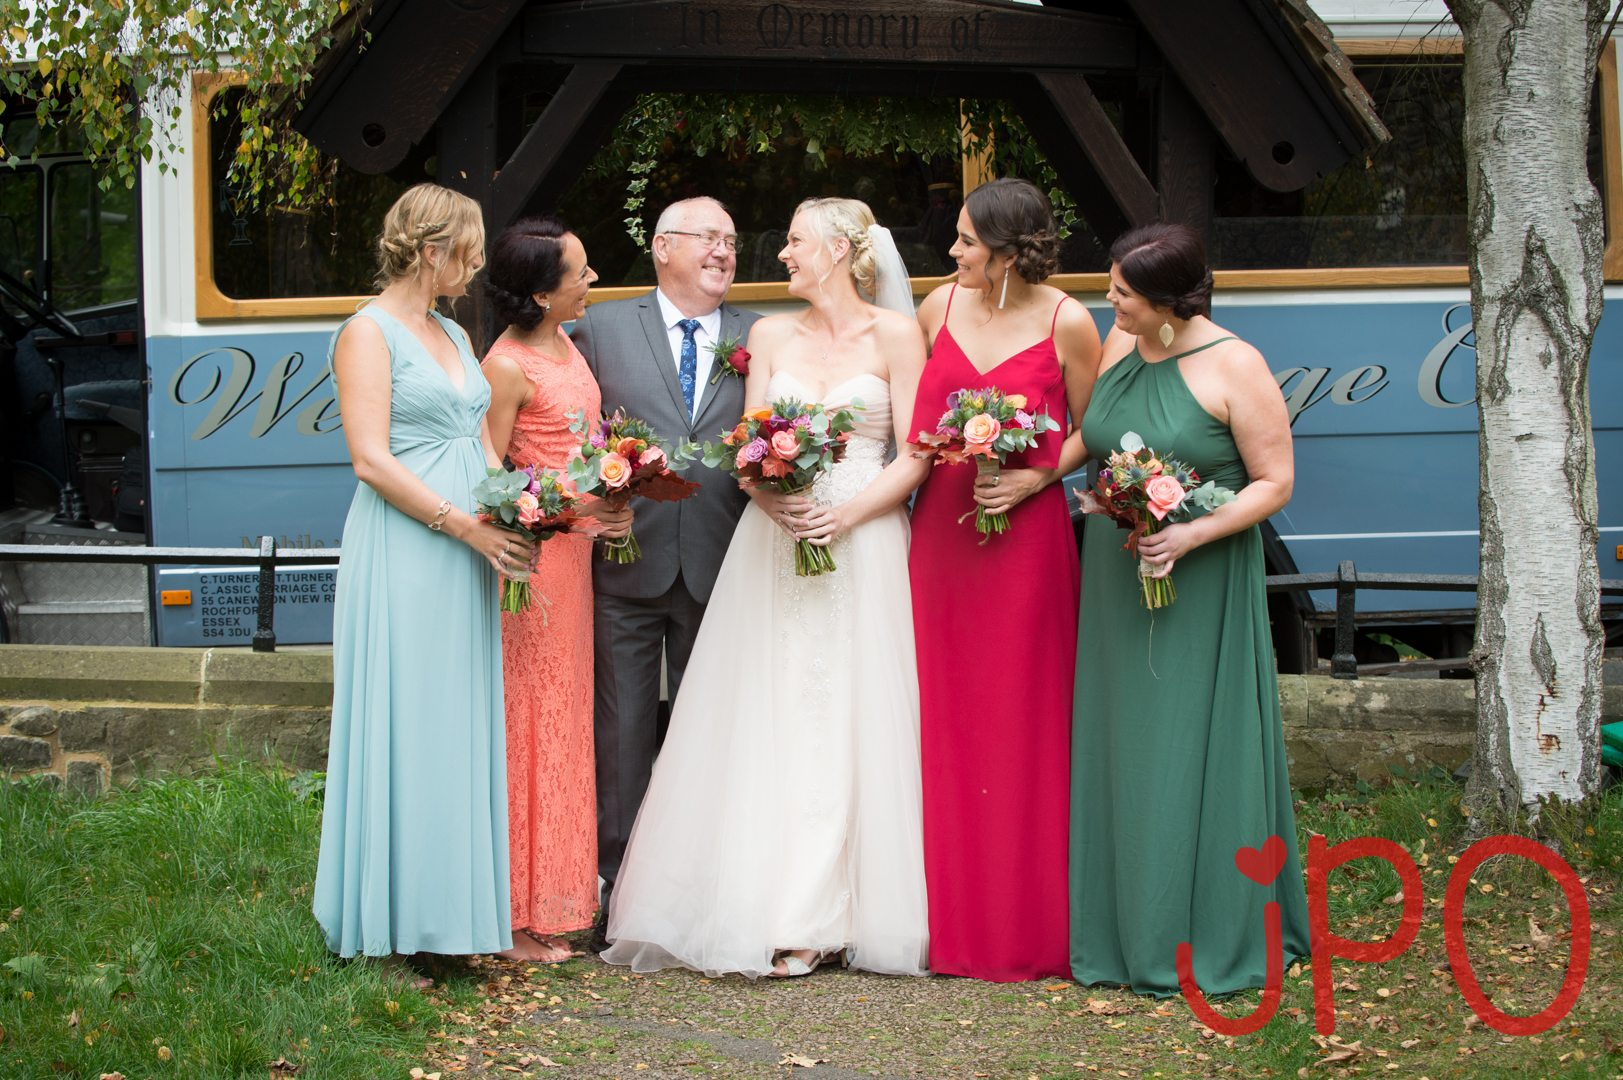 Sarah and Careys wedding at Theobalds Park